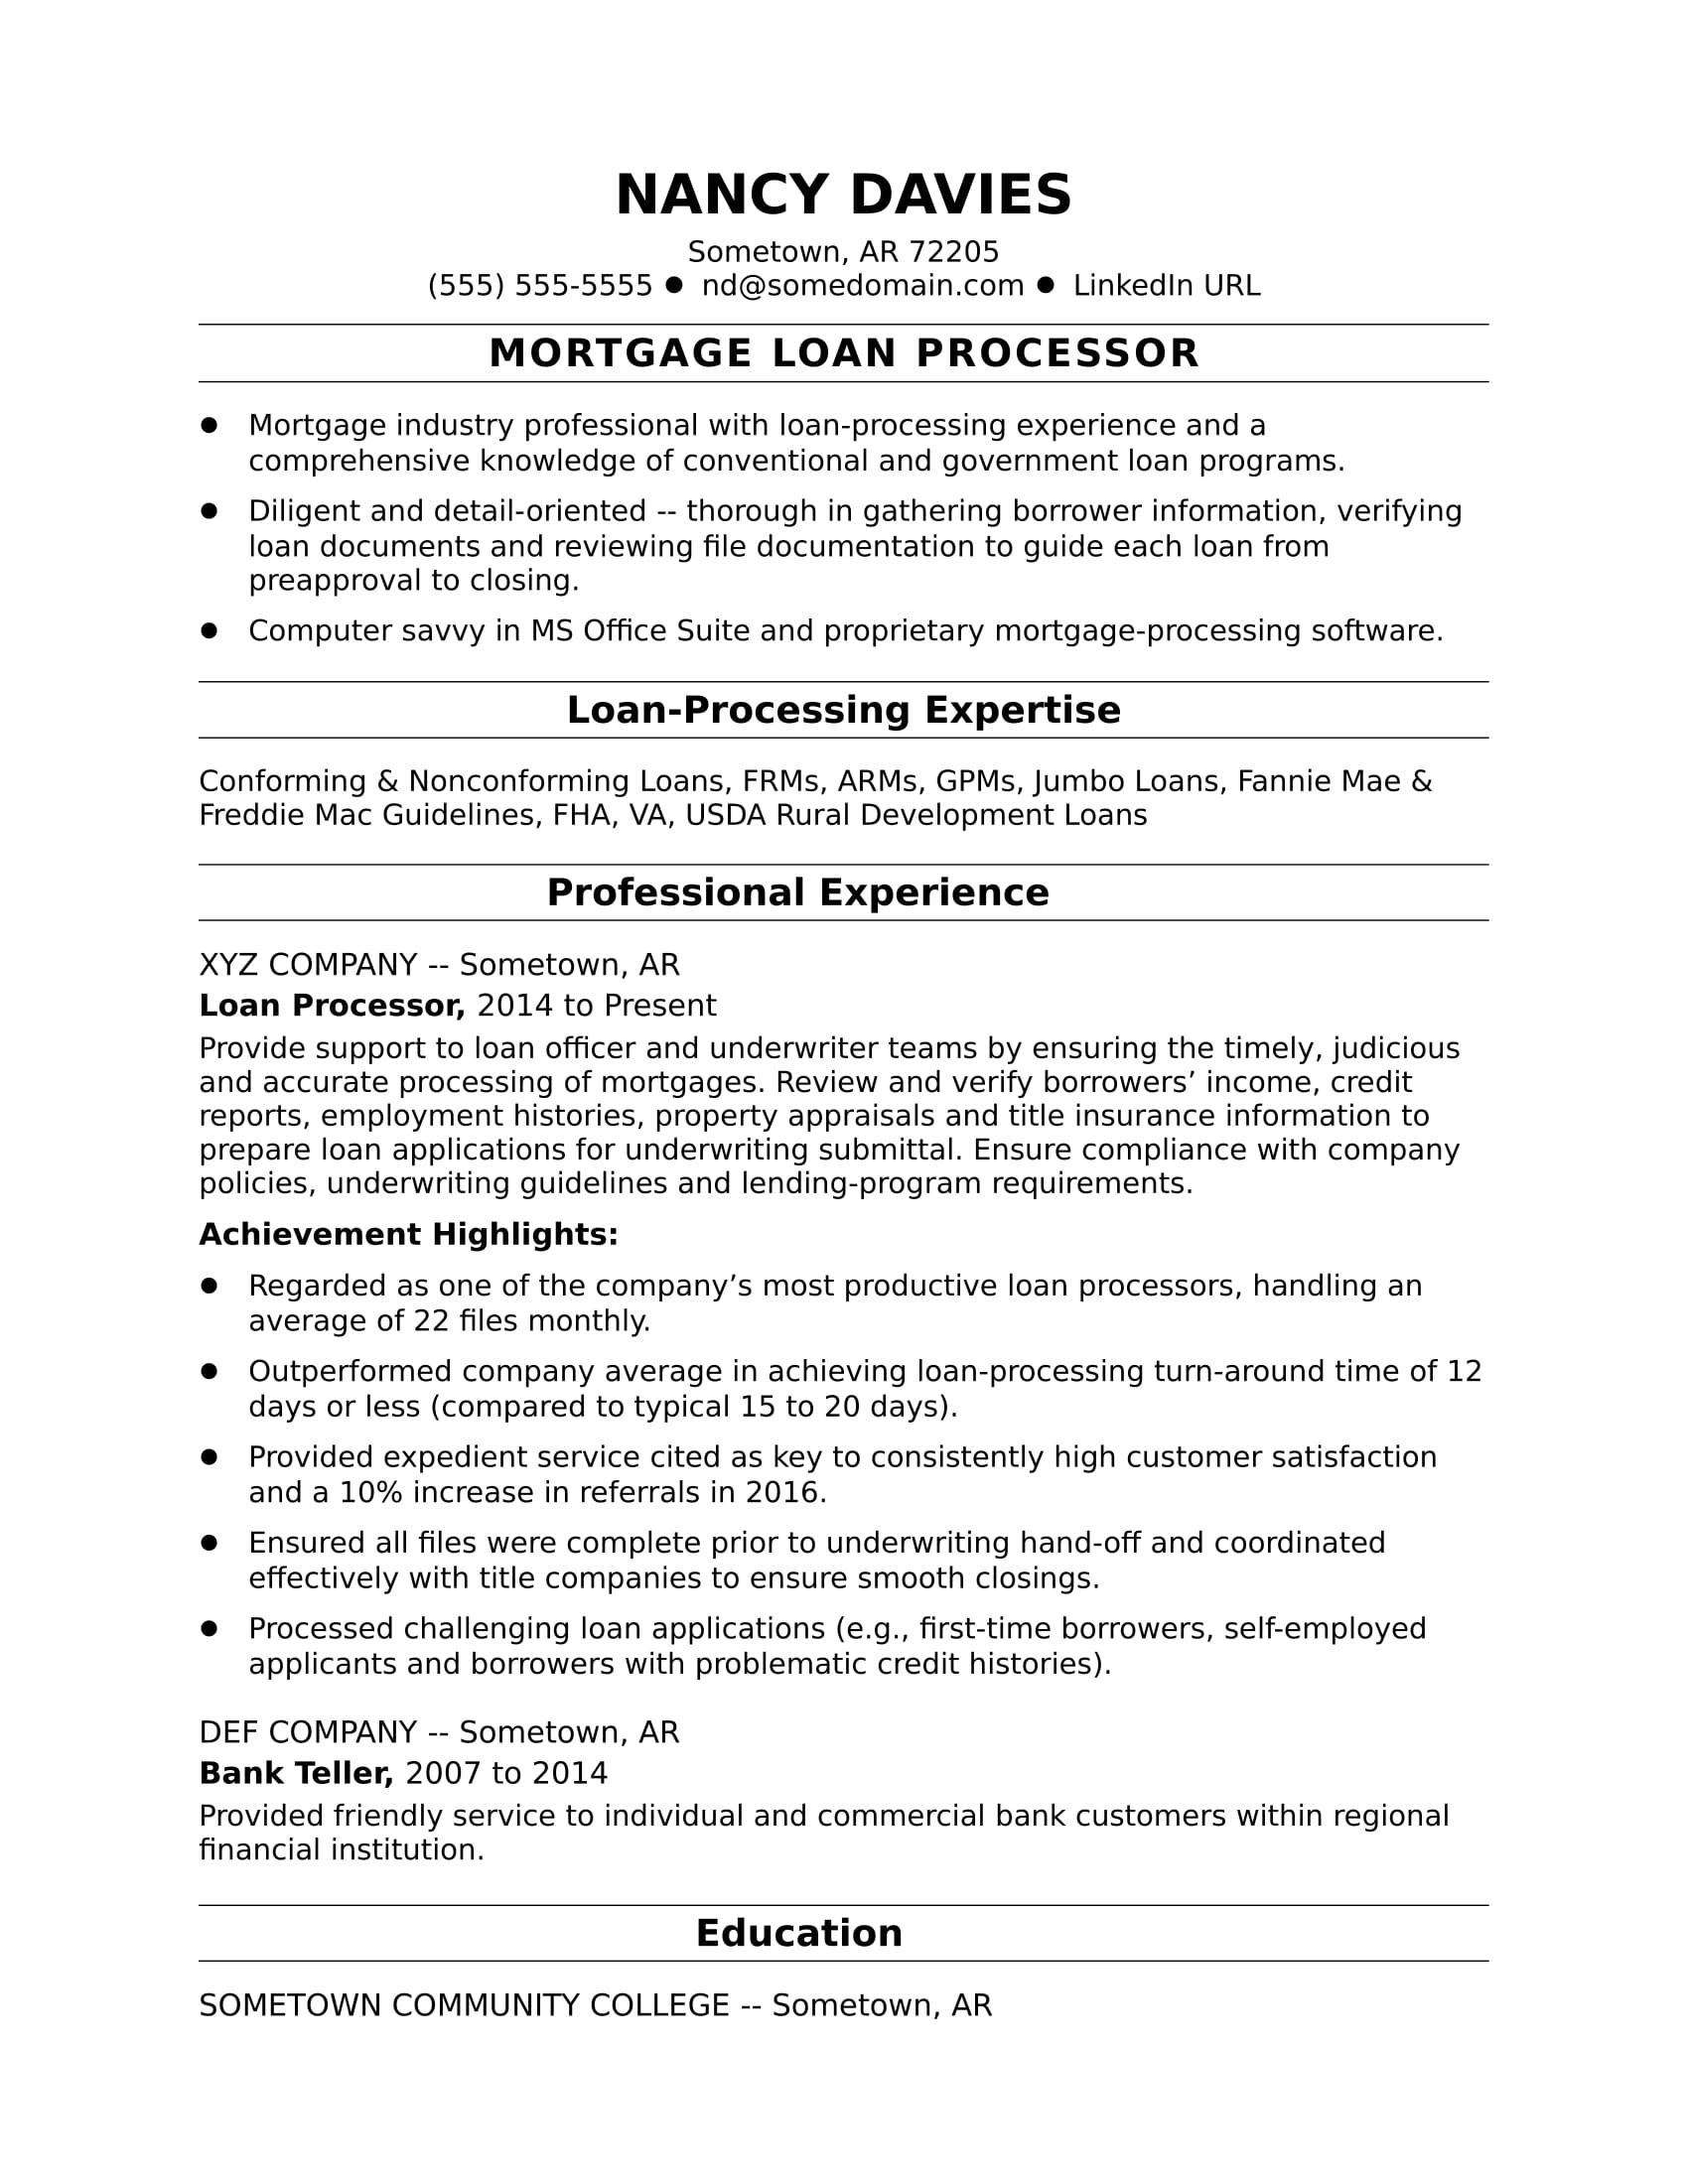 mortgage loan processor resume sample monster for credit officer track and field medical Resume Sample Resume For Credit Officer